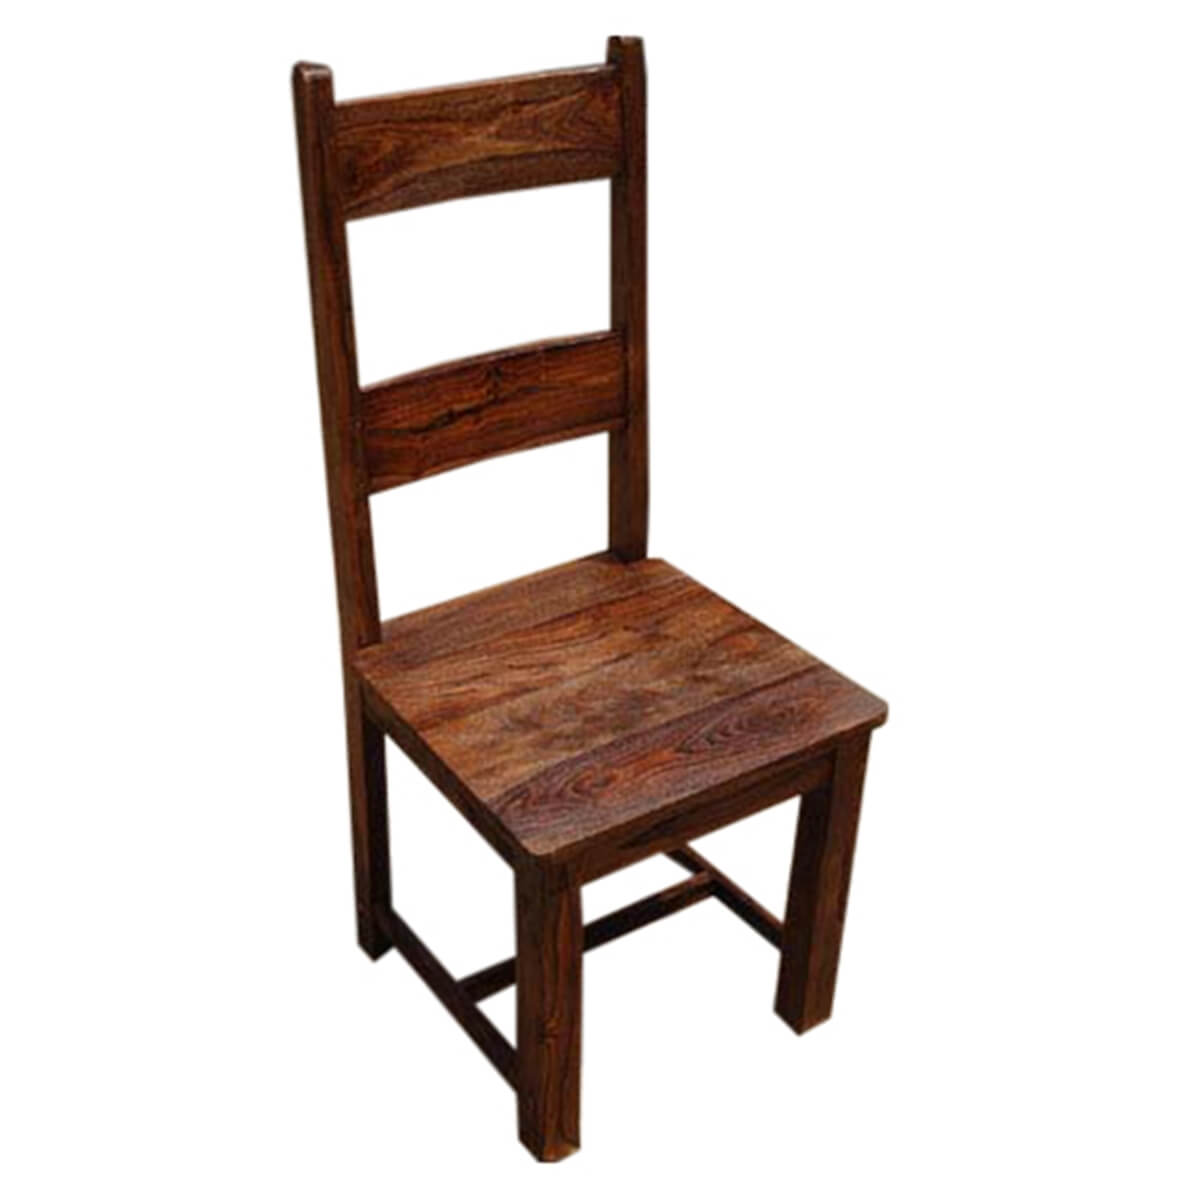 Kitchen Dining Chairs Solid Wood 8: Rustic Solid Wood Appalachian Dining Room Table & Chair Set